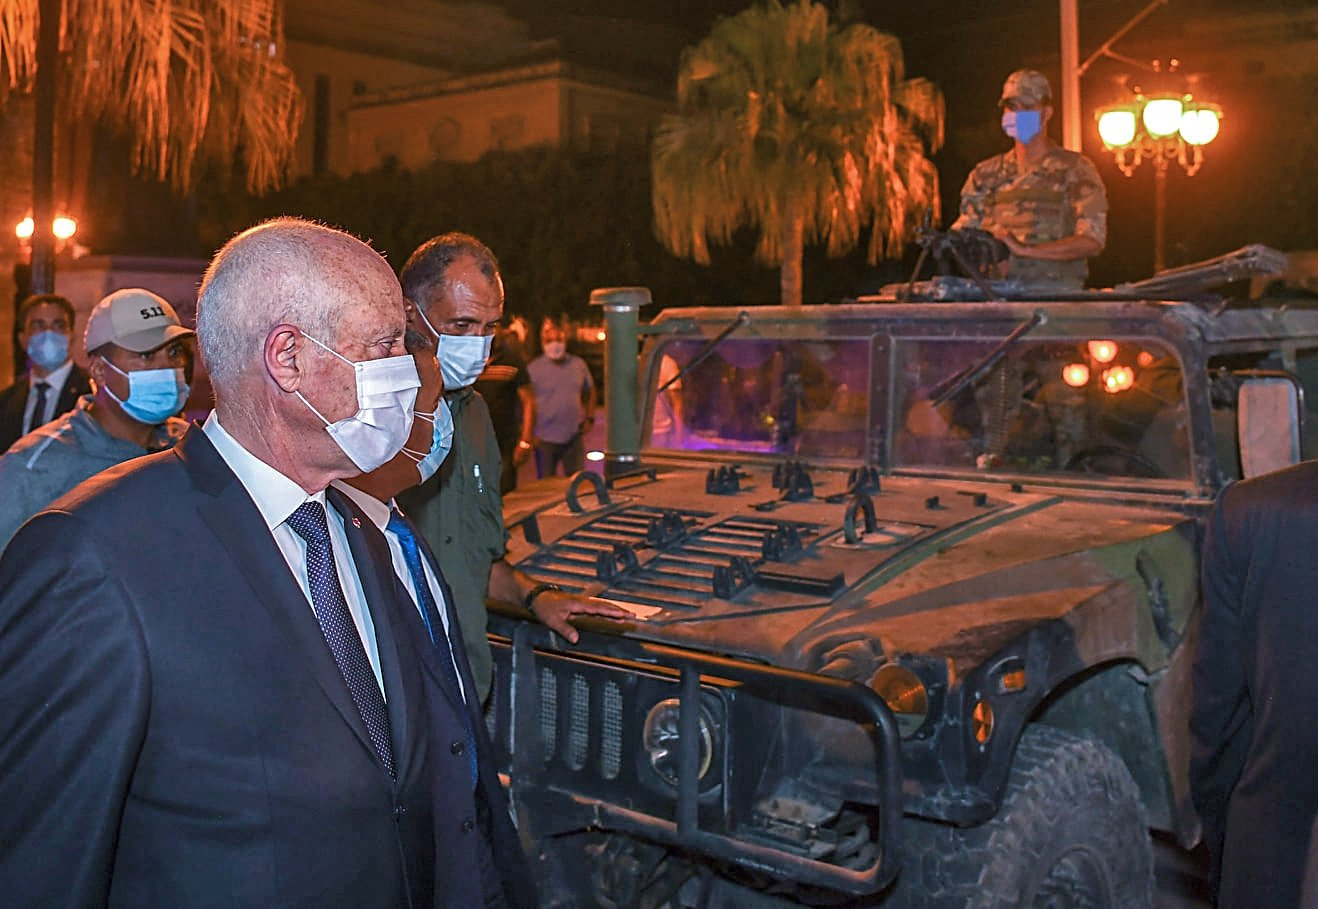 Tunisian President Kais Saied walking past a military vehicle in Tunis's central Habib Bourguiba Avenue, after he ousted the prime minister and ordered the parliament closed for 30 days, in the capital Tunis, Tunisia, on July 26, 2021. (AFP Photo)